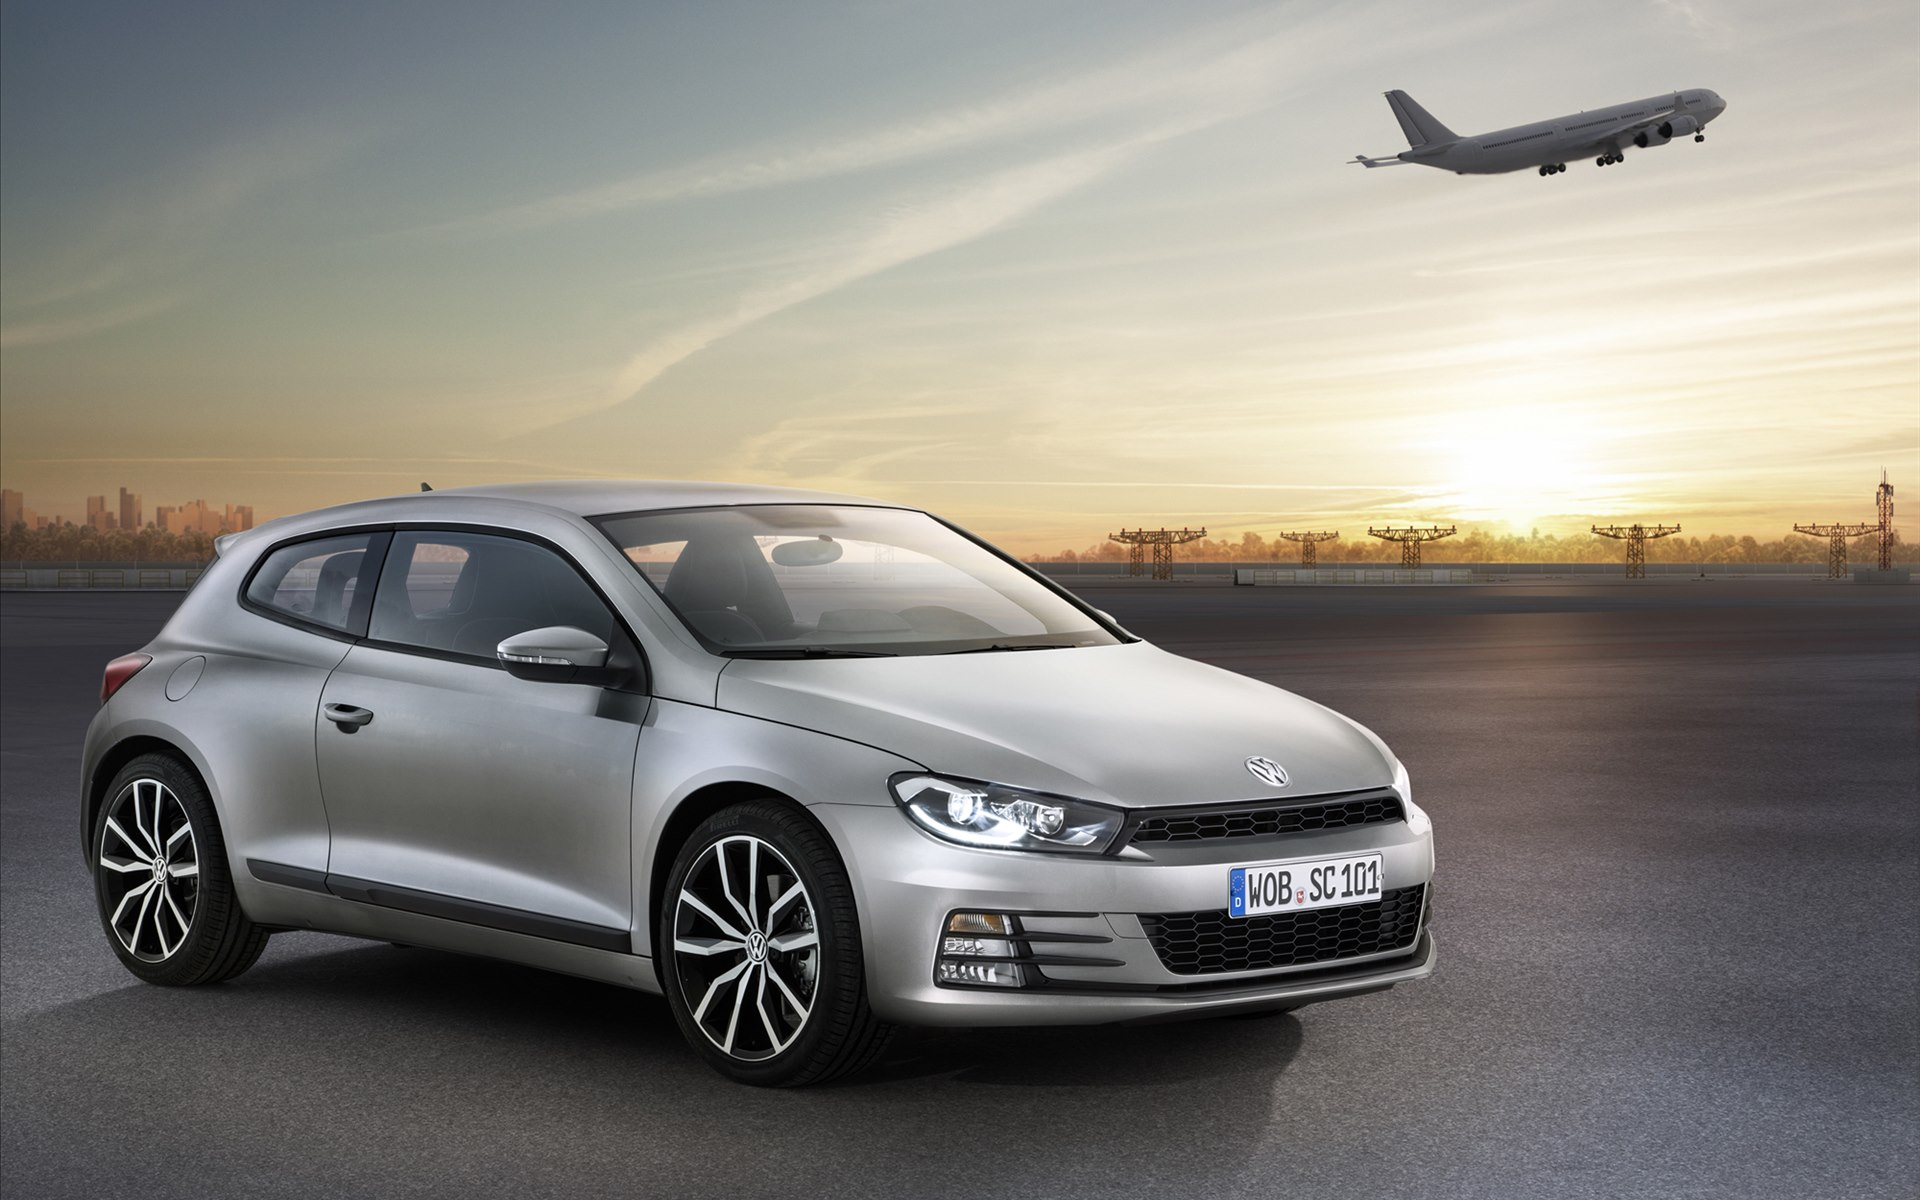 2014 Volkswagen Scirocco Wallpaper | HD Car Wallpapers